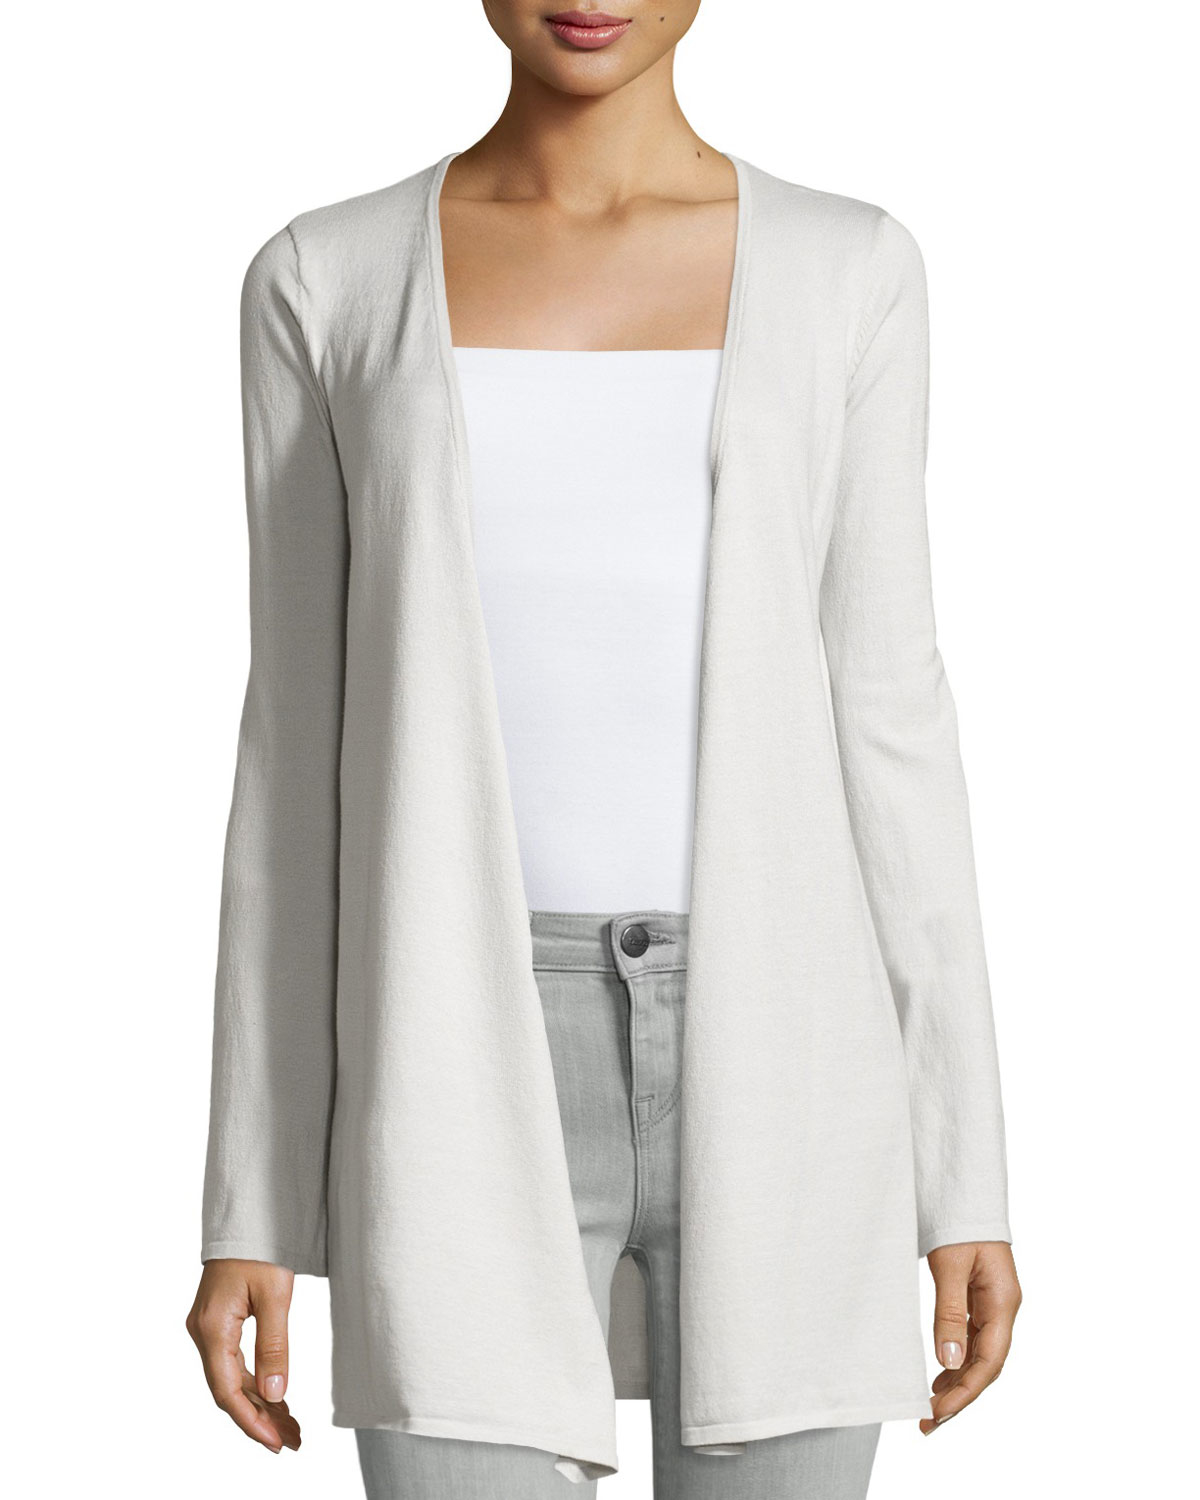 Minnie rose Cotton-blend Long-sleeve Duster Cardigan in White | Lyst